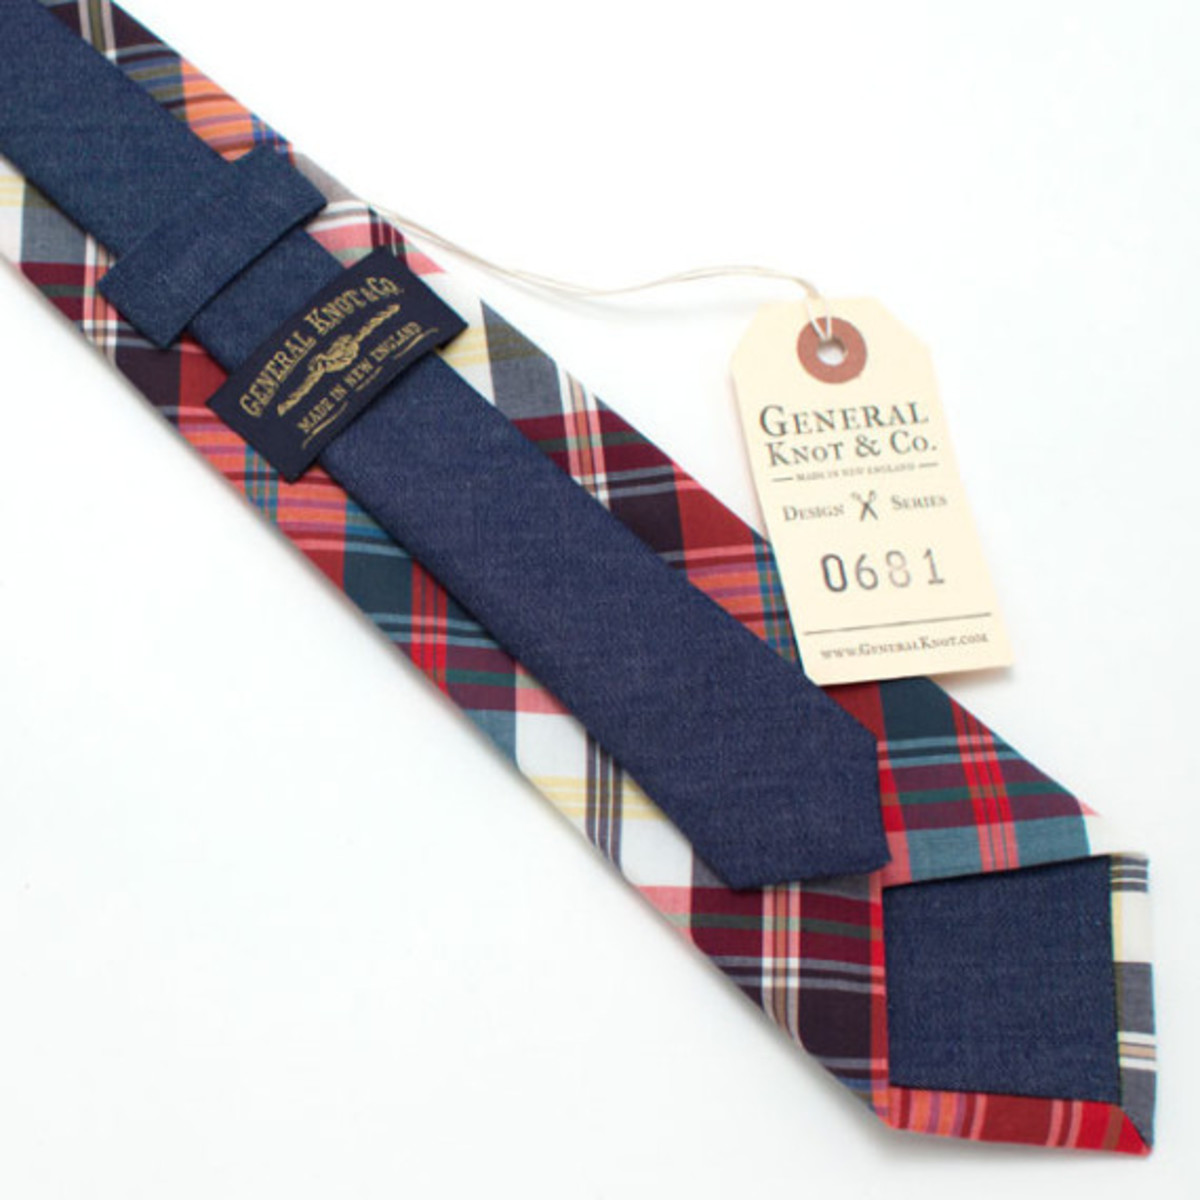 general-knot-and-co-portland-family-neckwear-collection-10